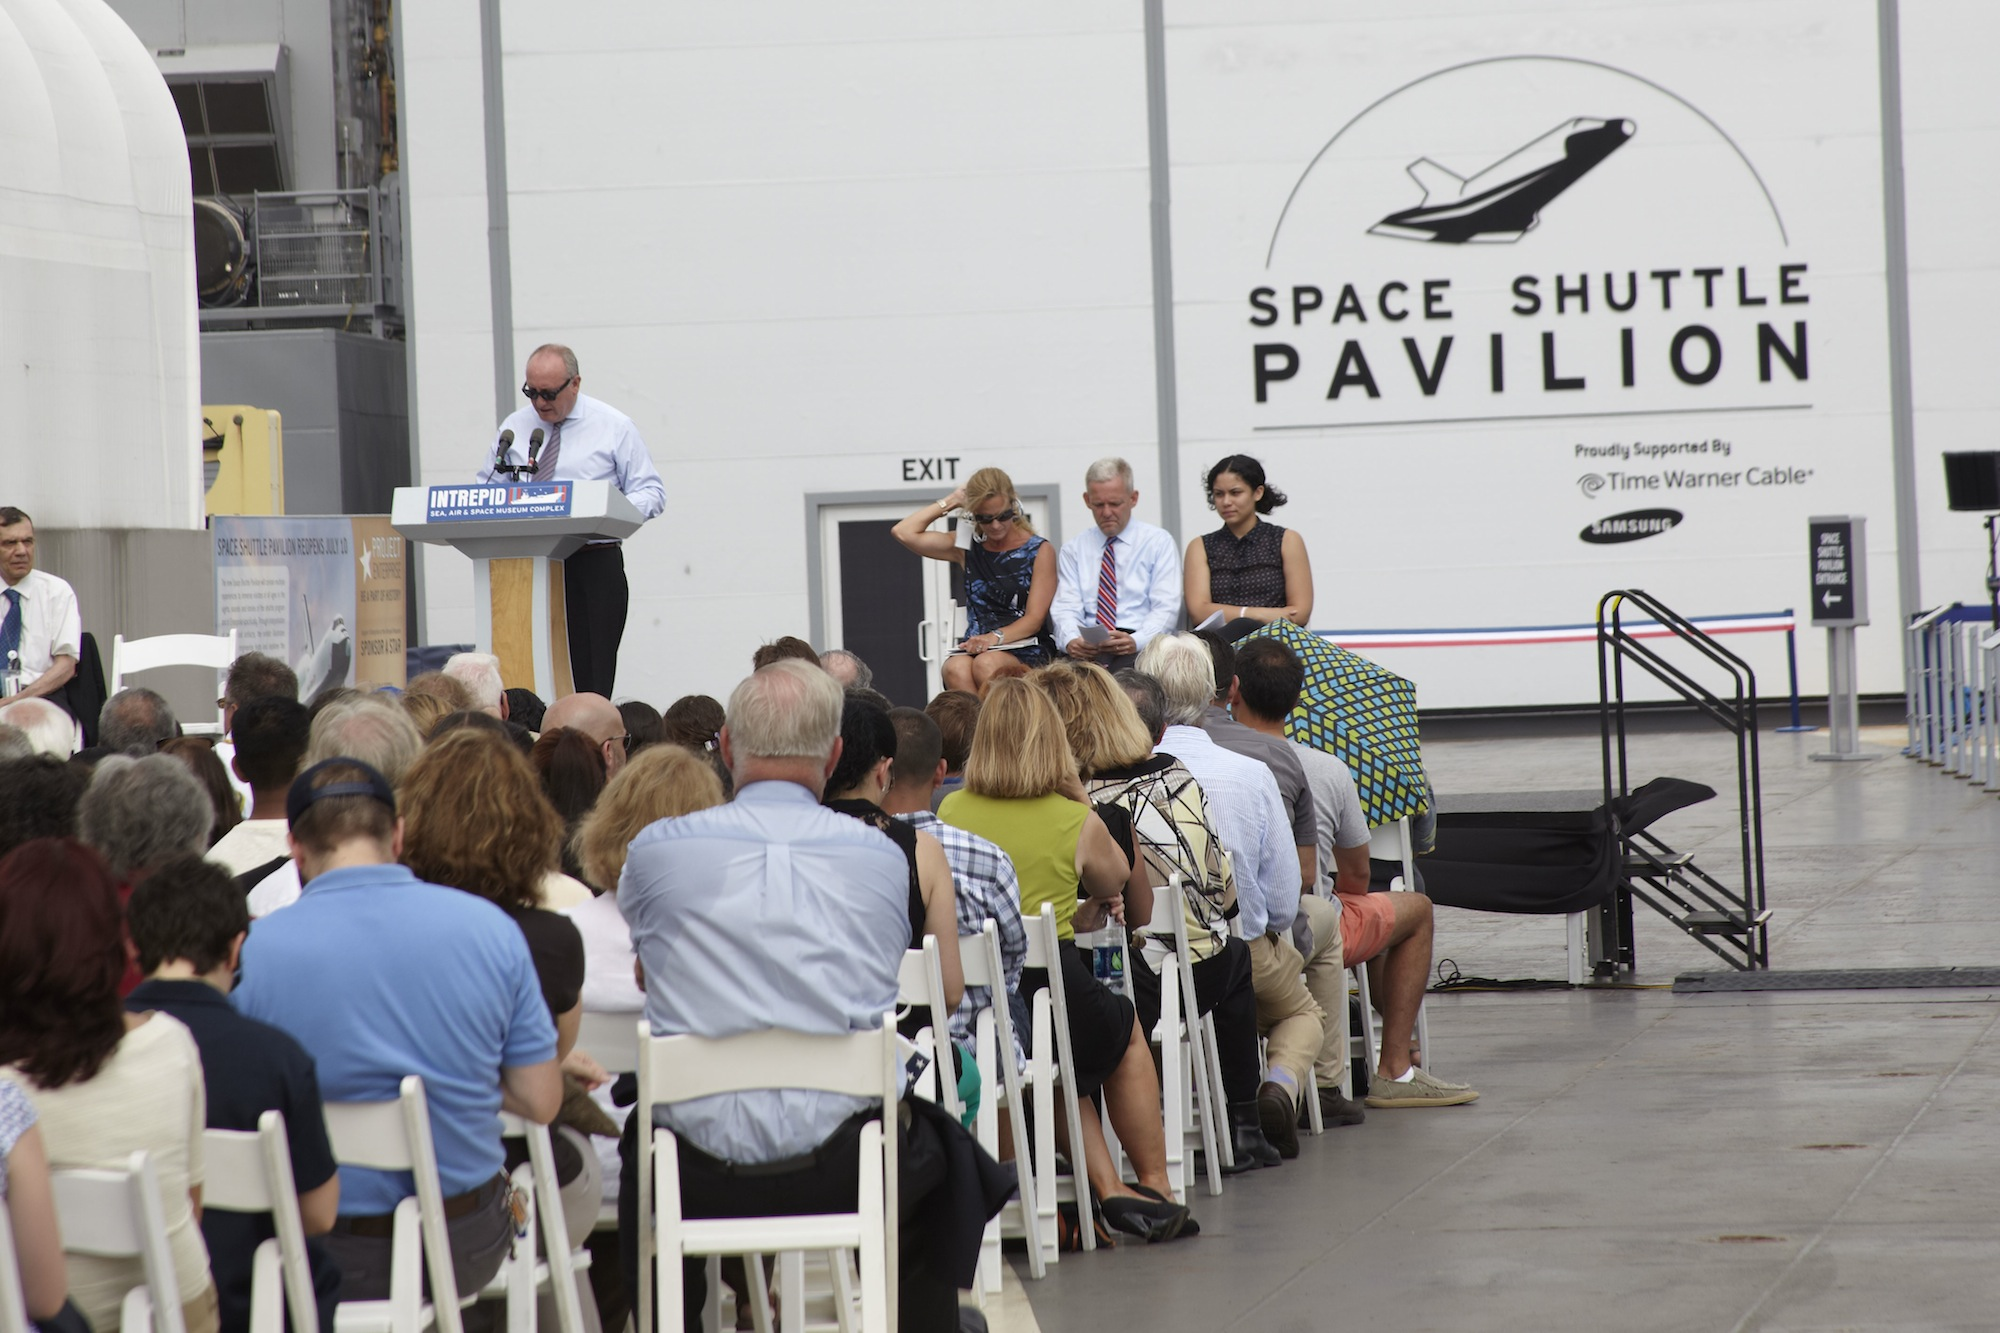 Speakers Celebrate Space Shuttle Enterprise Pavilion Reopening